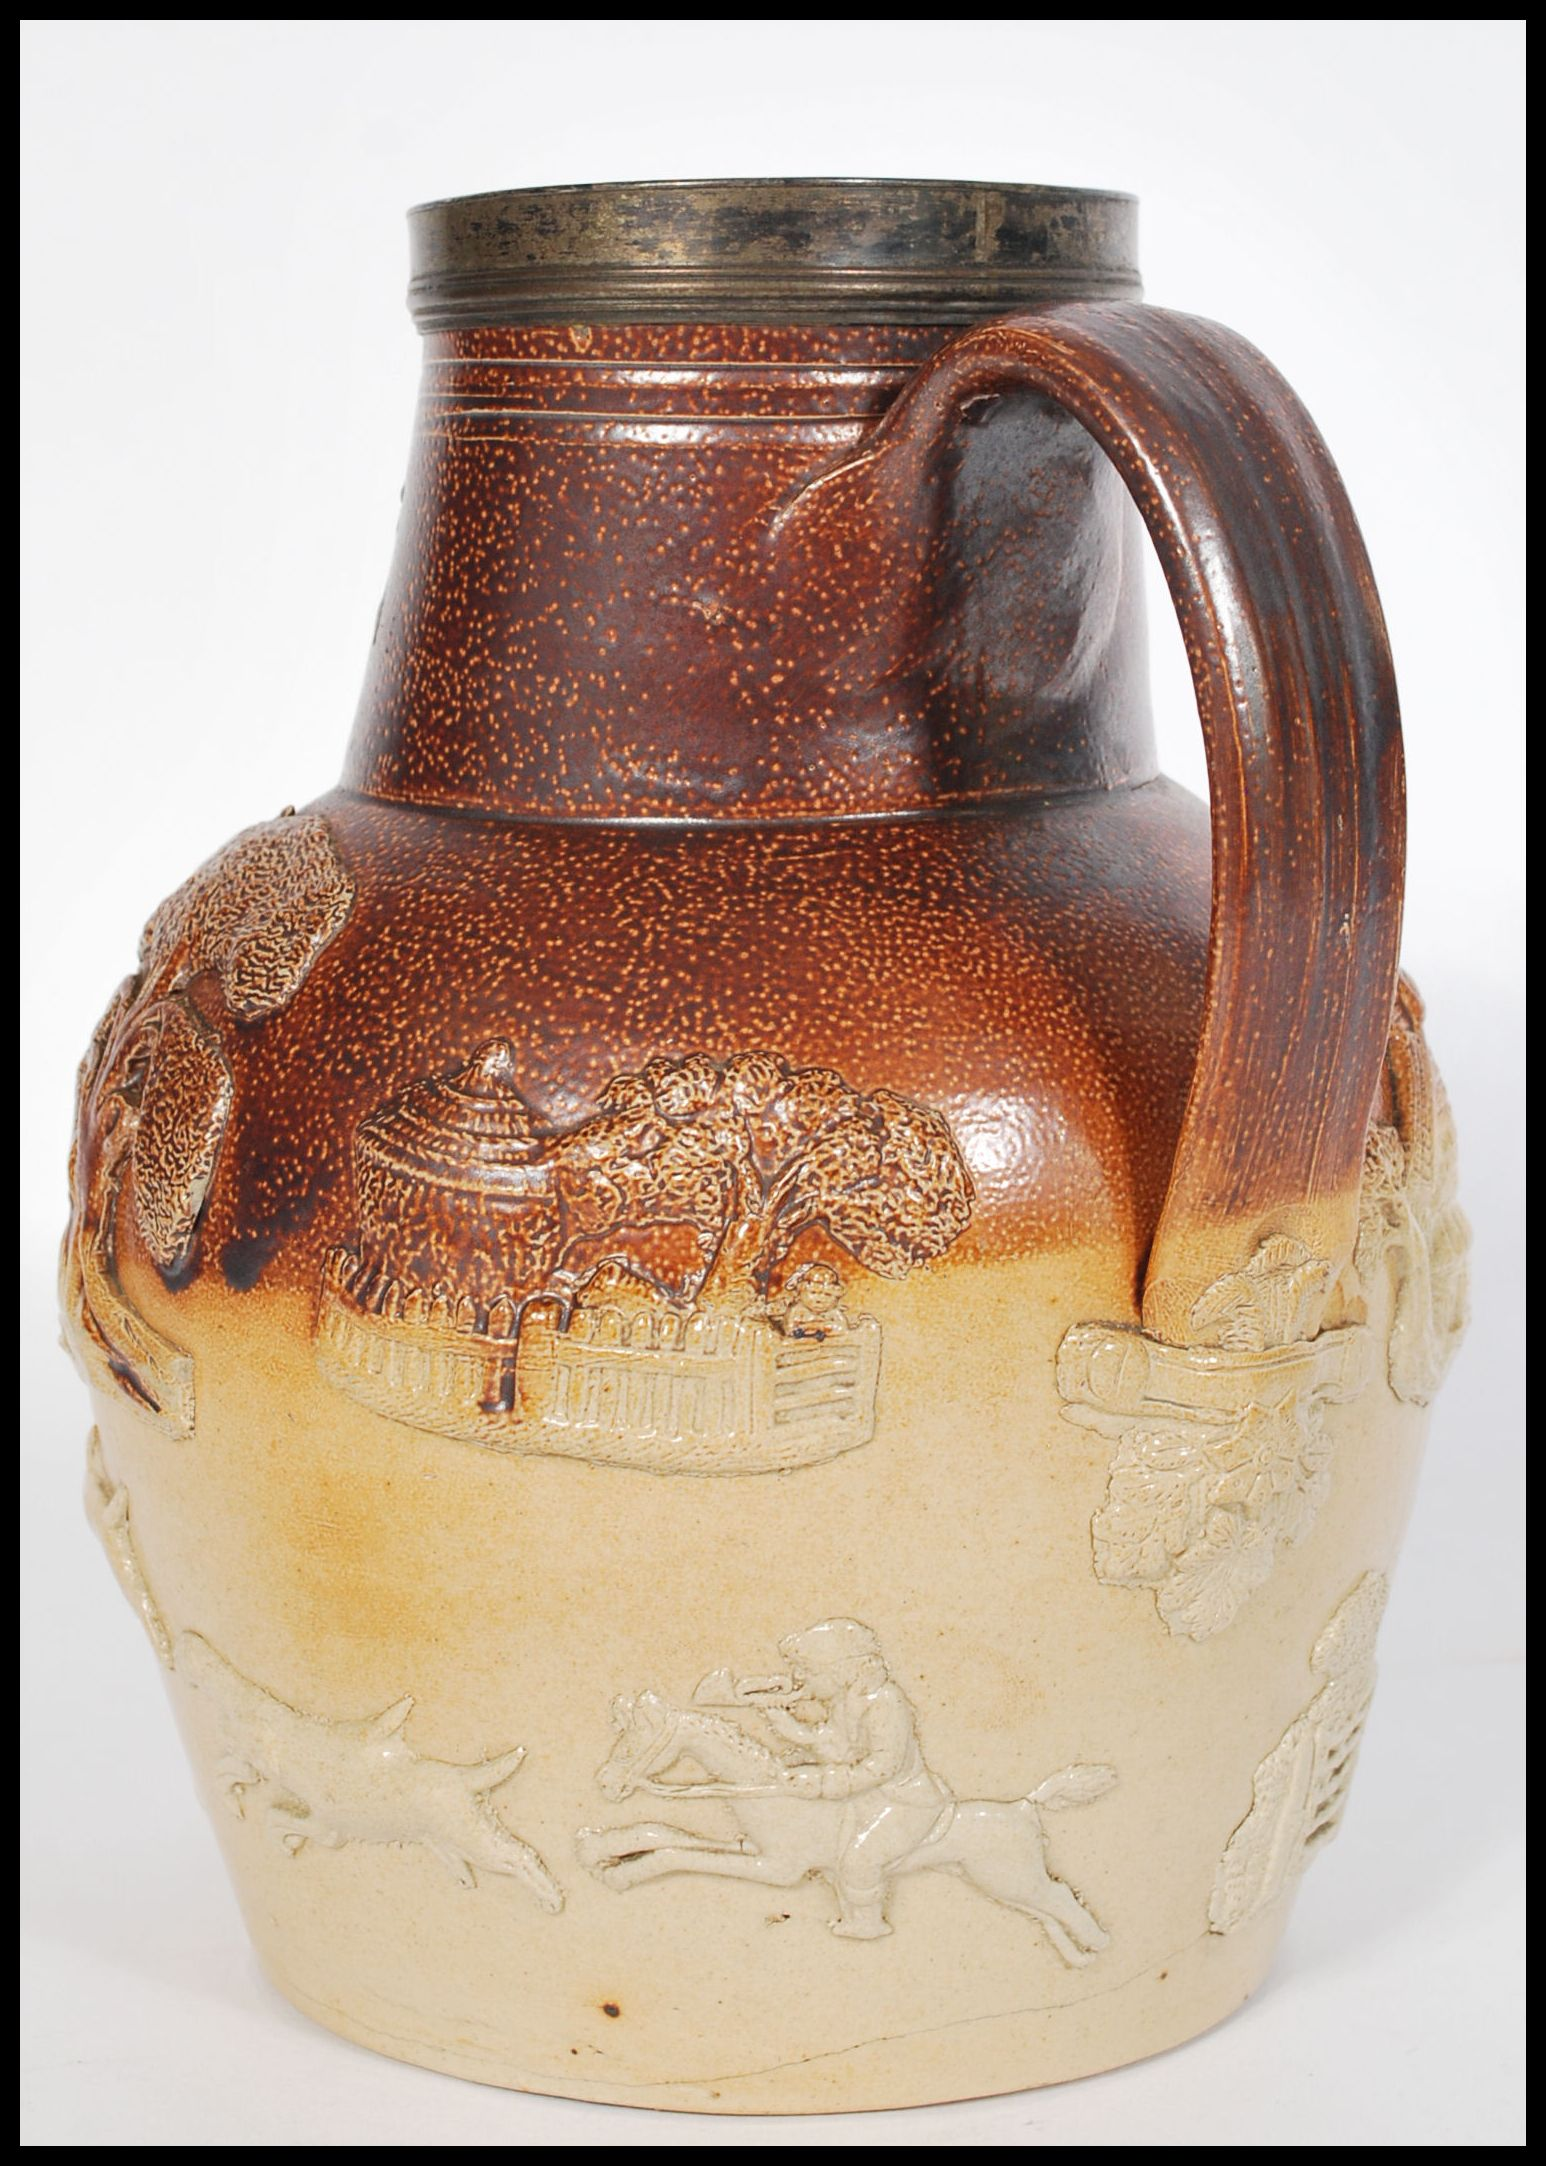 Lot 1 - An early 19th century Salt Glazed Stoneware ewer jug by Vauxhall pottery London. The two tone jug of